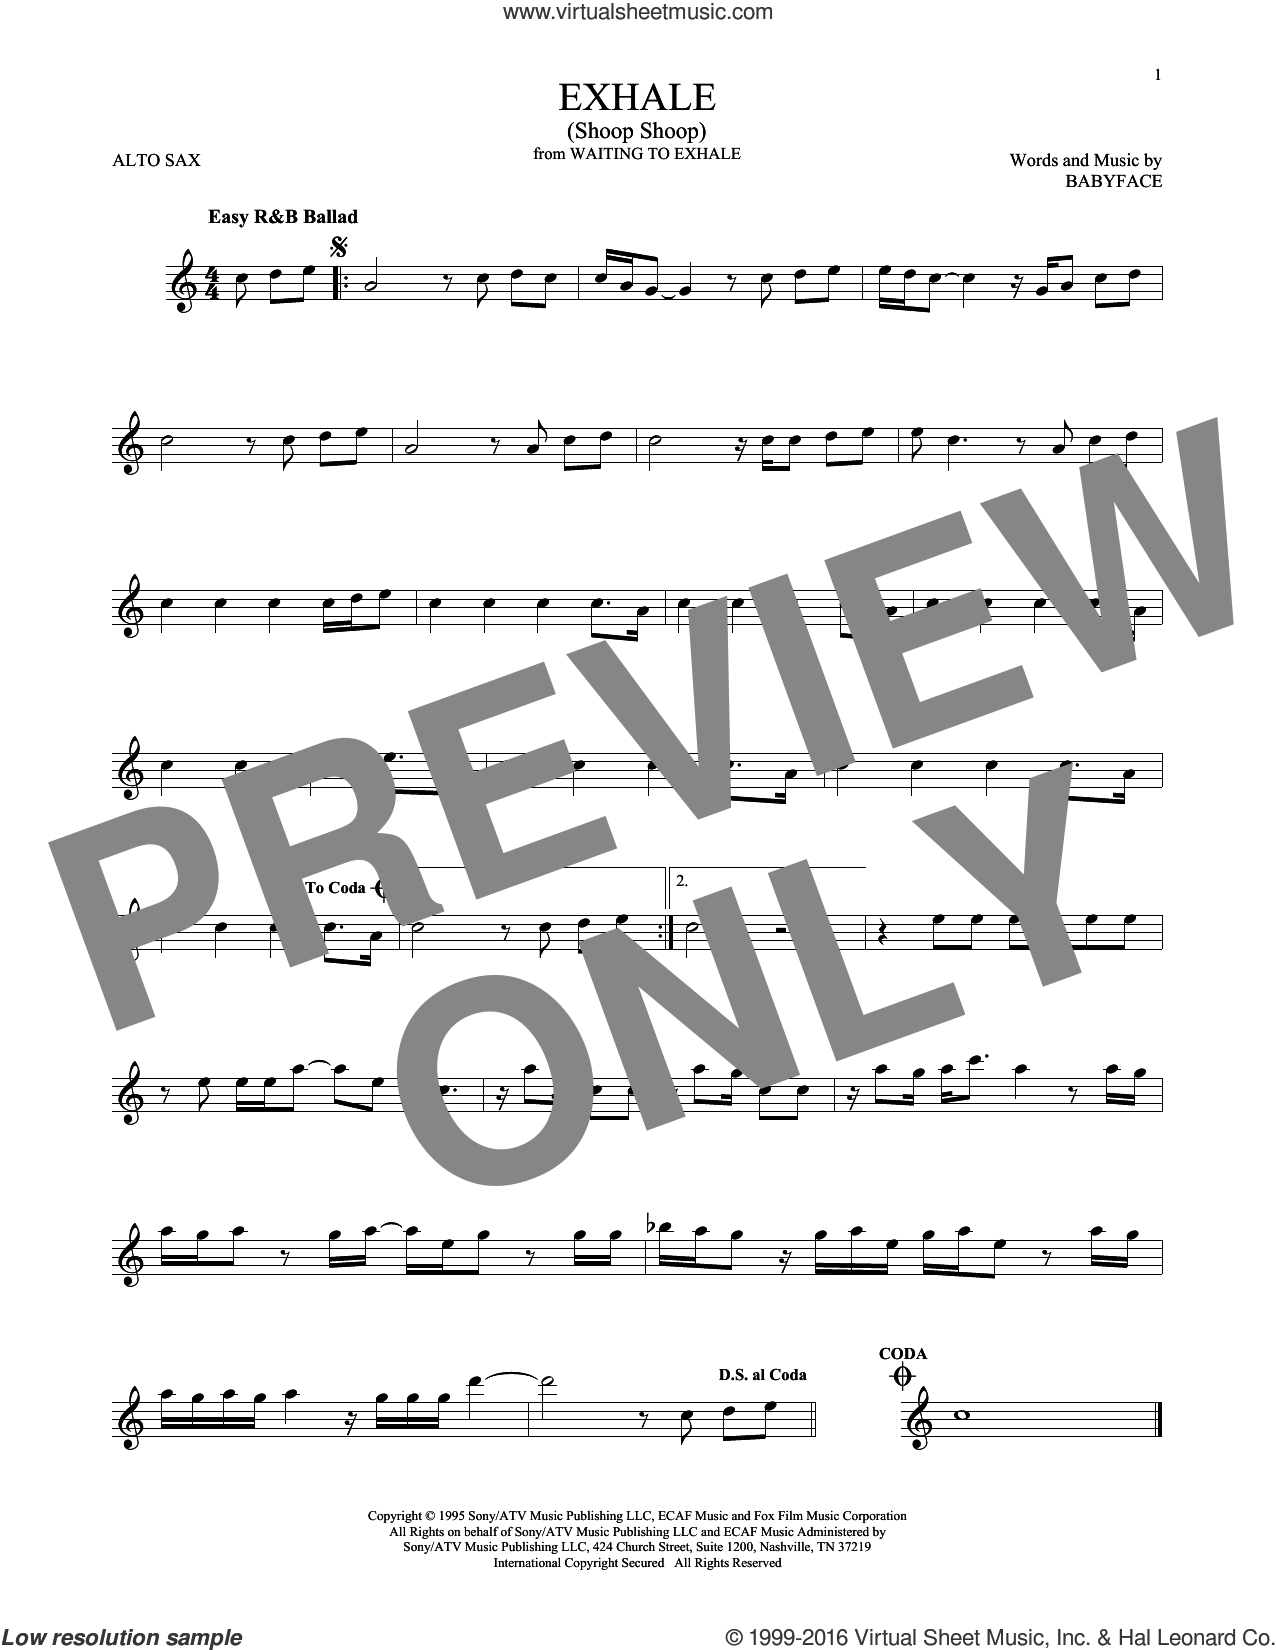 Exhale (Shoop Shoop) sheet music for alto saxophone solo ( Sax) by Babyface and Whitney Houston. Score Image Preview.